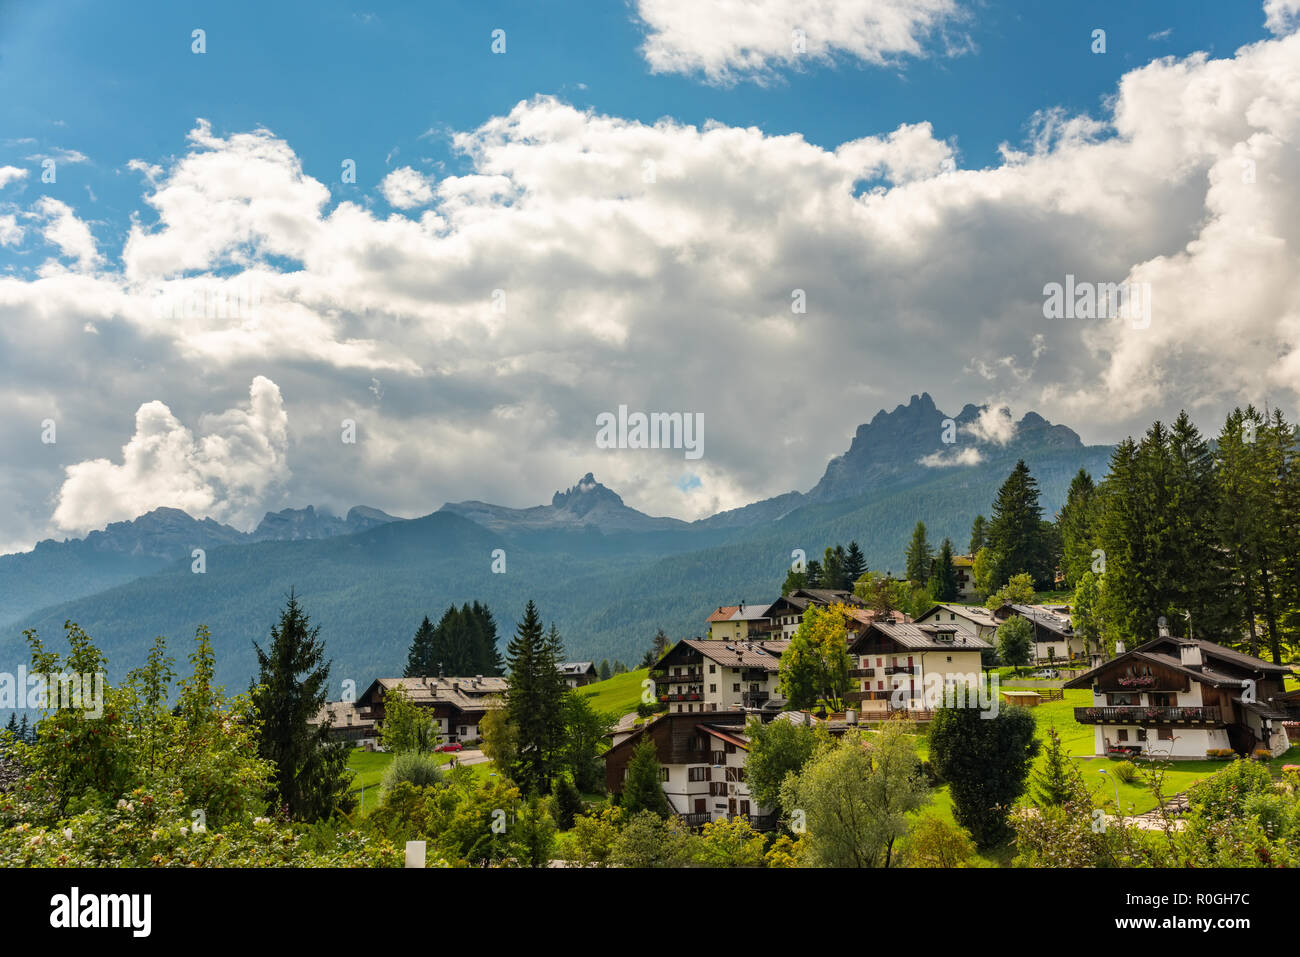 Alpine resort in Dolomites mountains Cortina D Ampezzo,South Tyrol Italy Europe - Stock Image